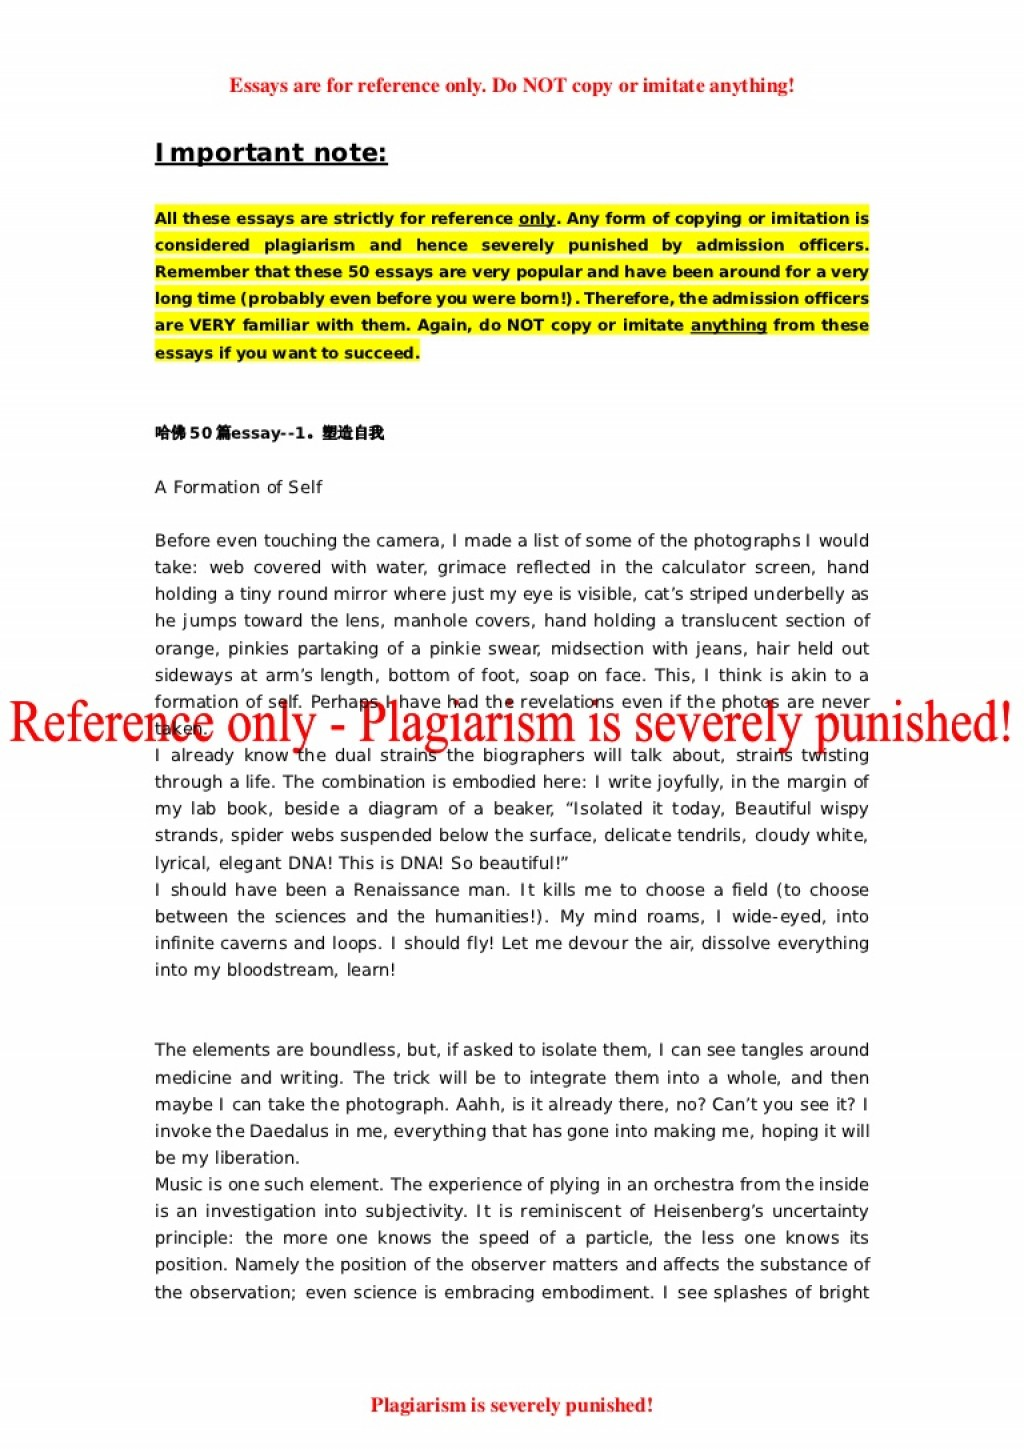 002 Essay Example 50successfulharvardapplicationessays Phpapp02 Thumbnail Harvard Essays That Staggering Worked University Common App Business School Large